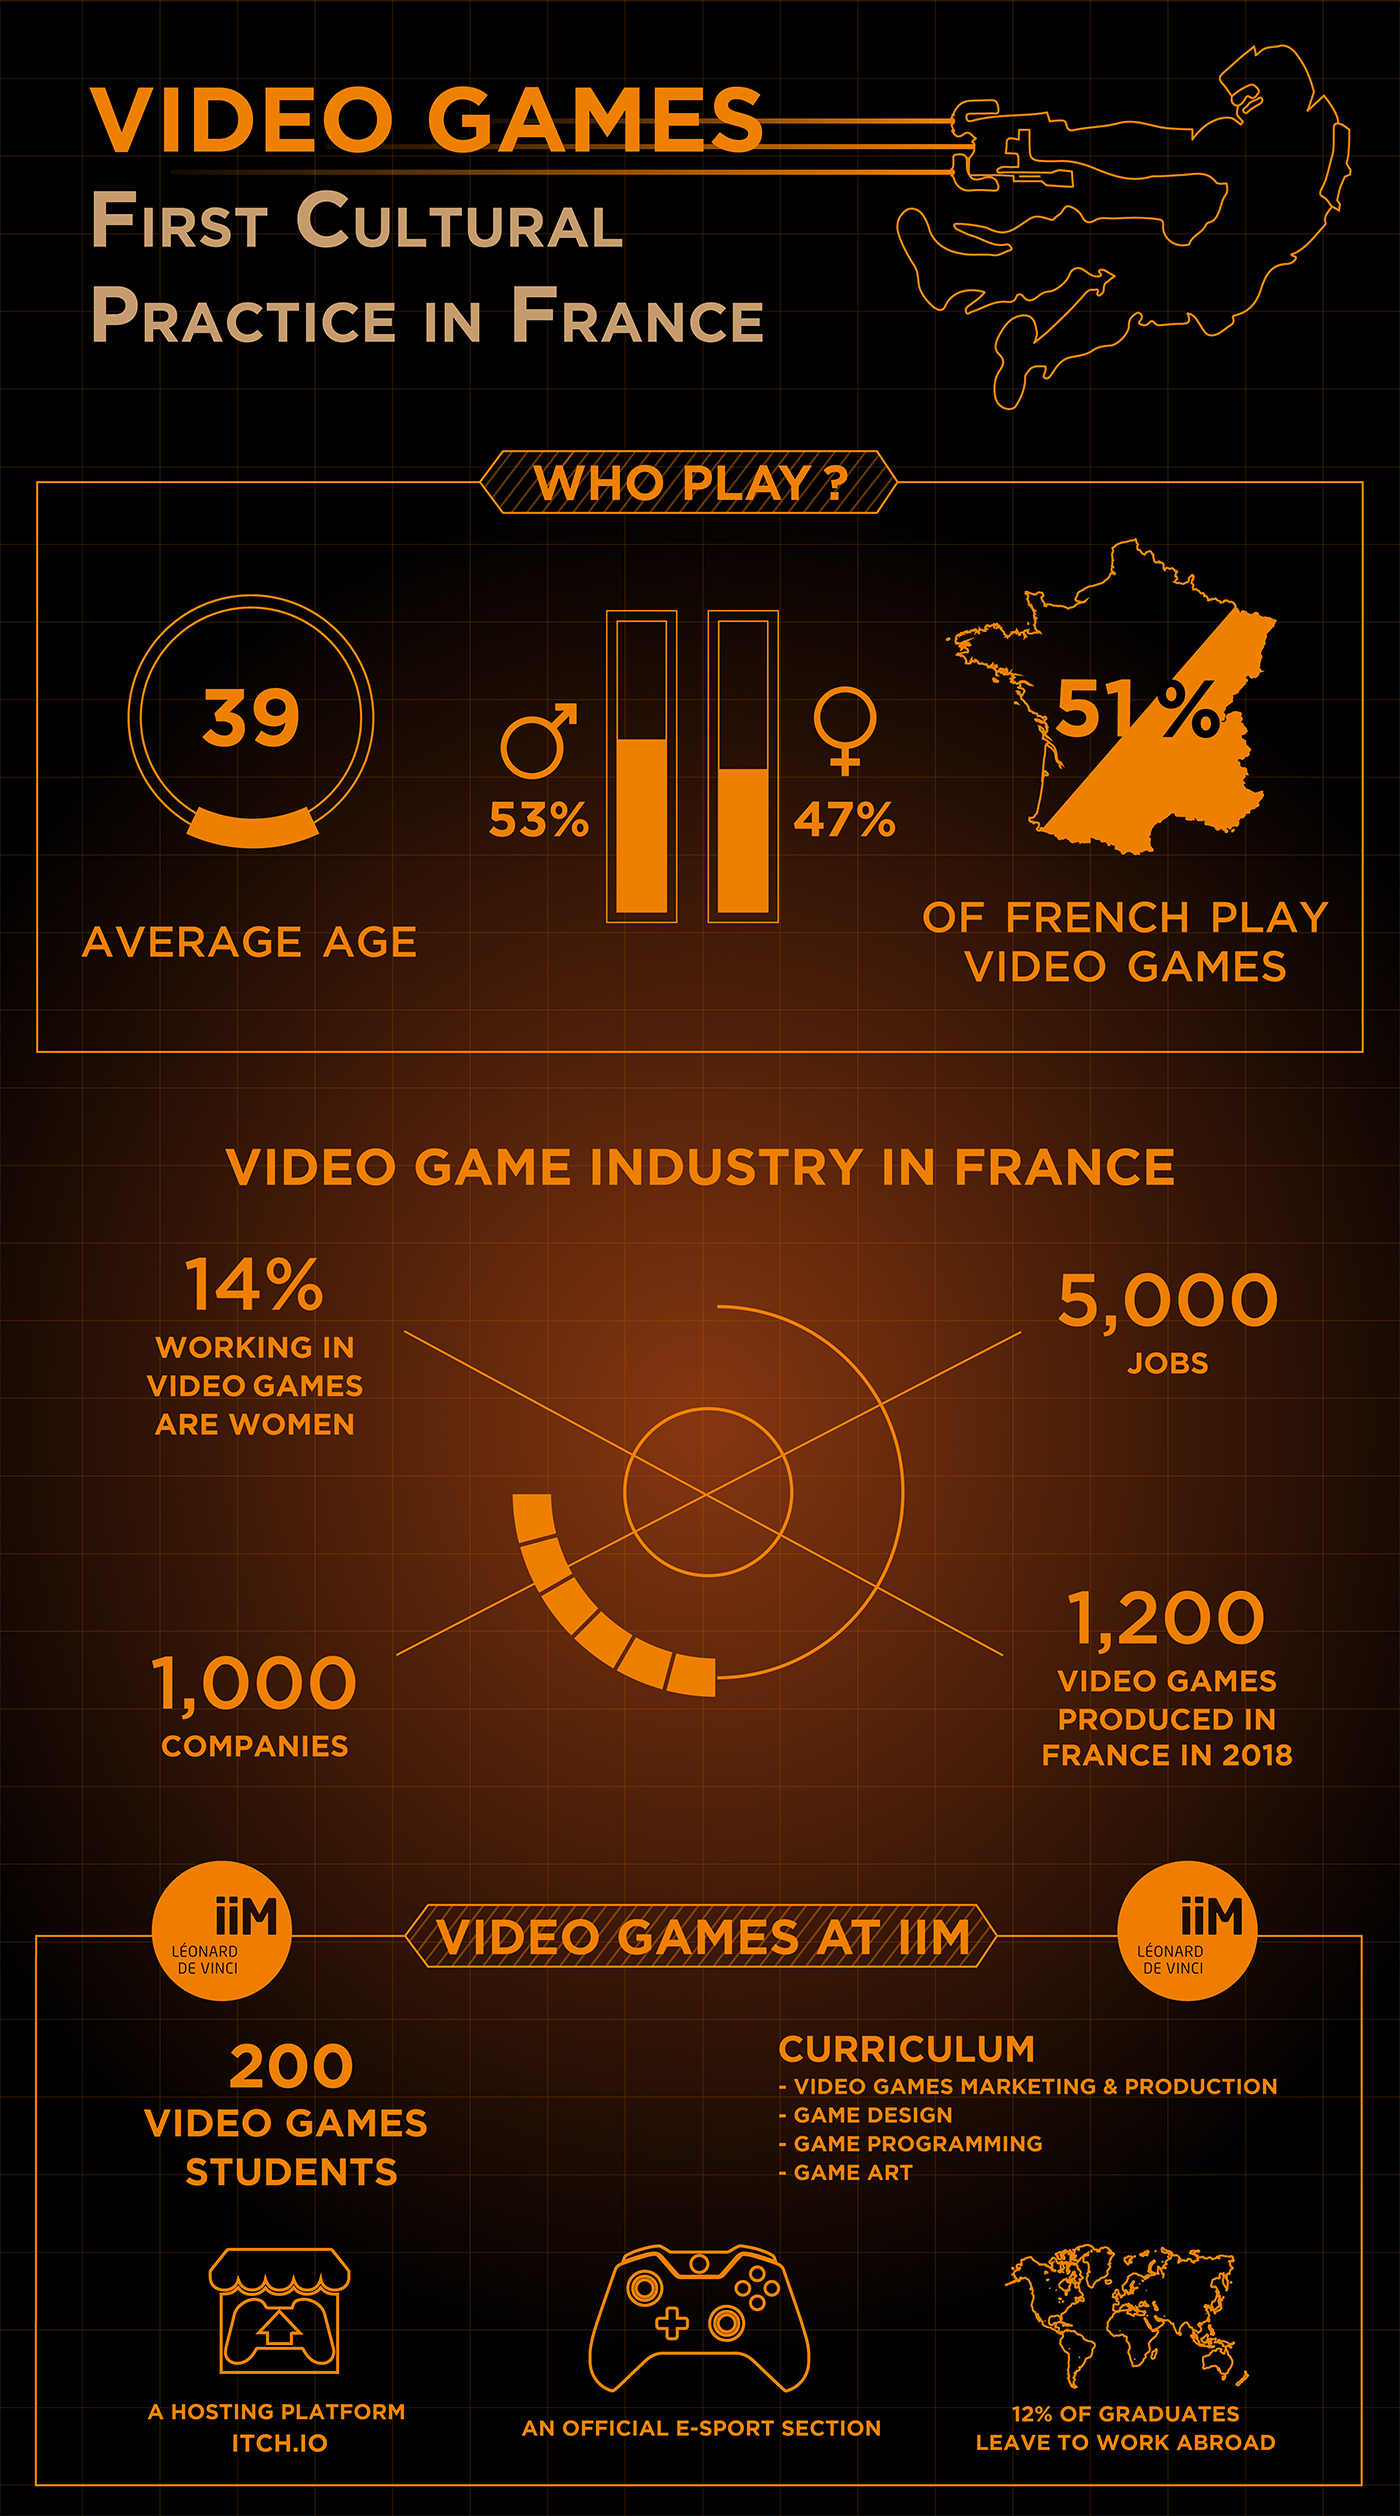 JV Inbound V2 - Infographic: the importance and vitality of video games in France